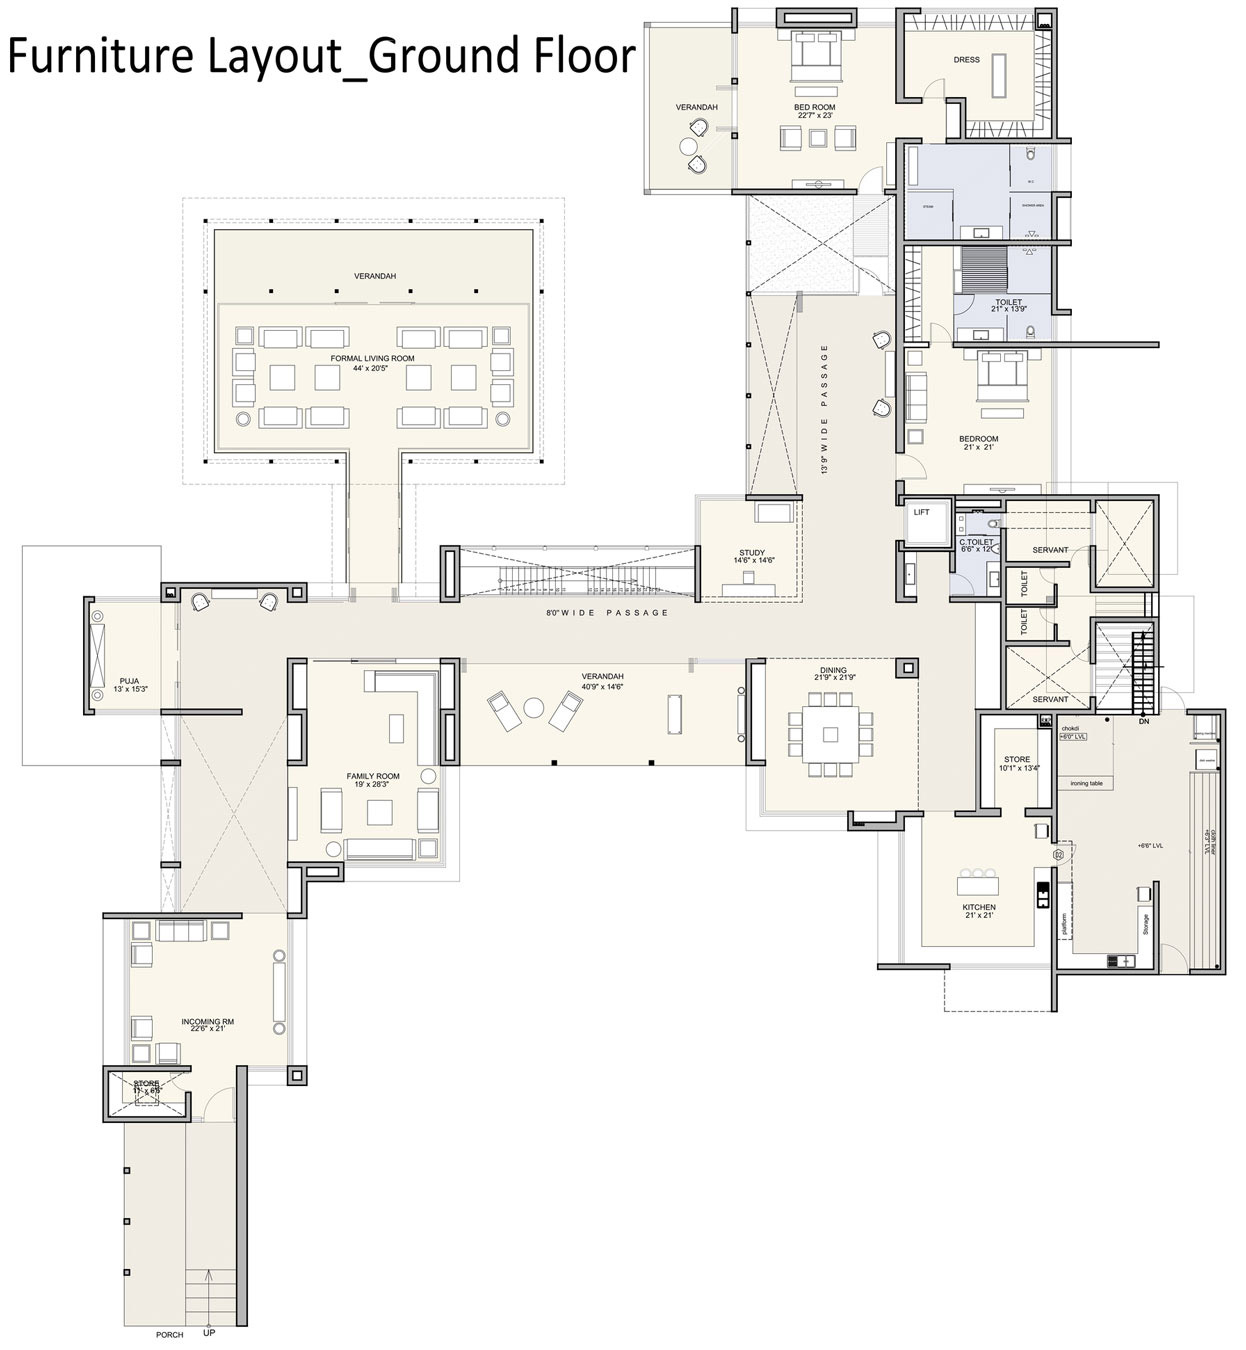 Ground floor furniture layout contemporary house in for Furniture layout